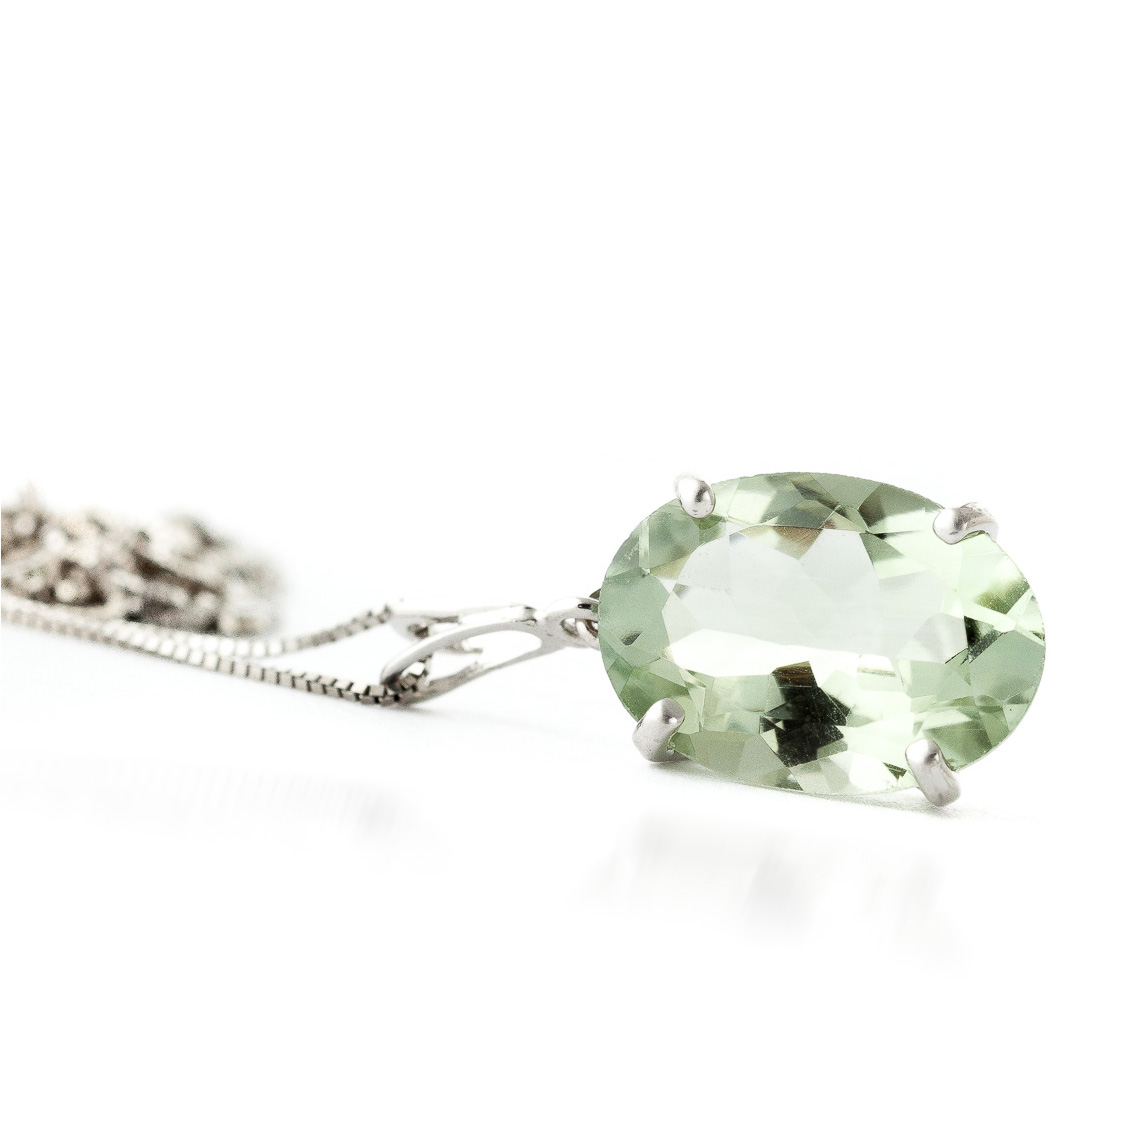 Oval Cut Green Amethyst Pendant Necklace 7.55ct in 9ct White Gold